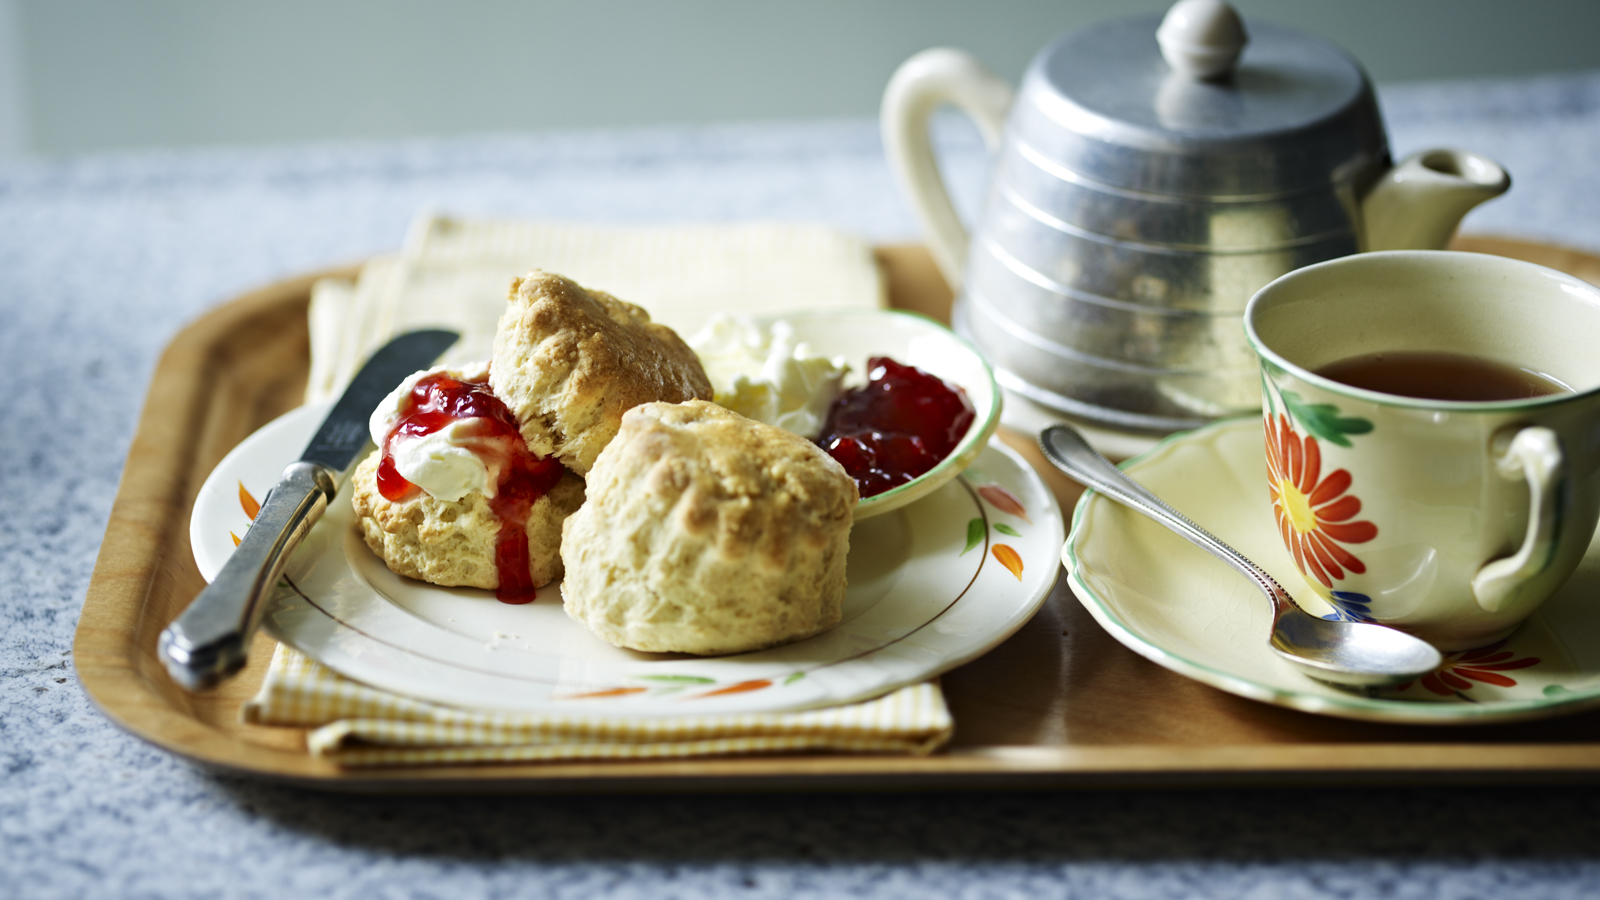 What to bake for tea